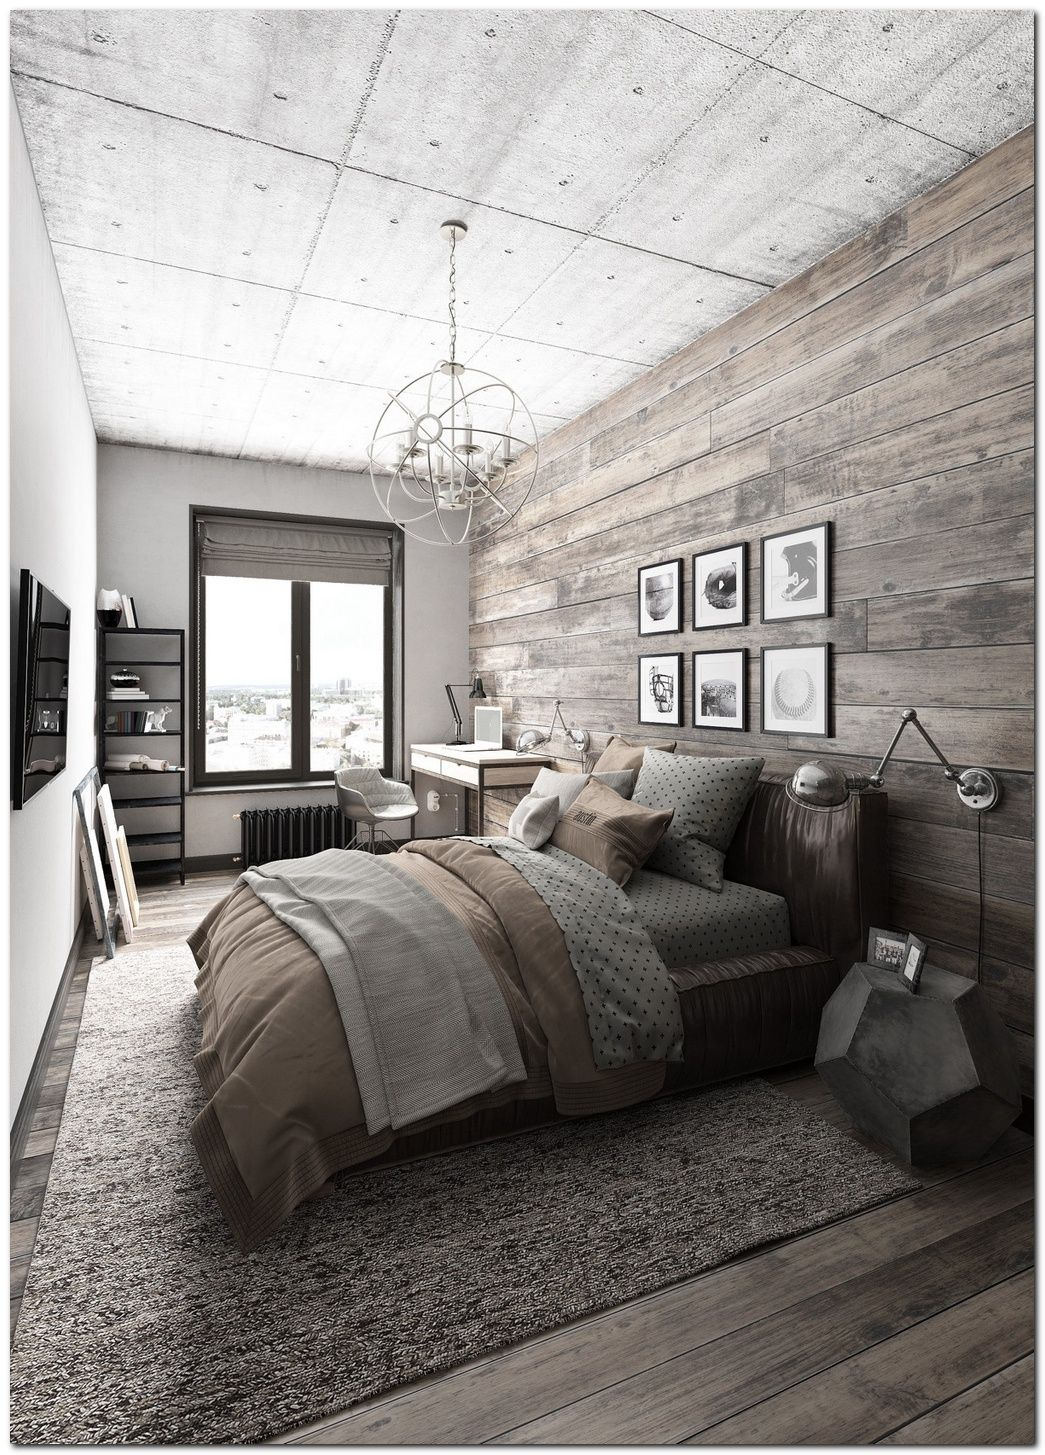 70+ Ideas For Industrial Bedroom Interior